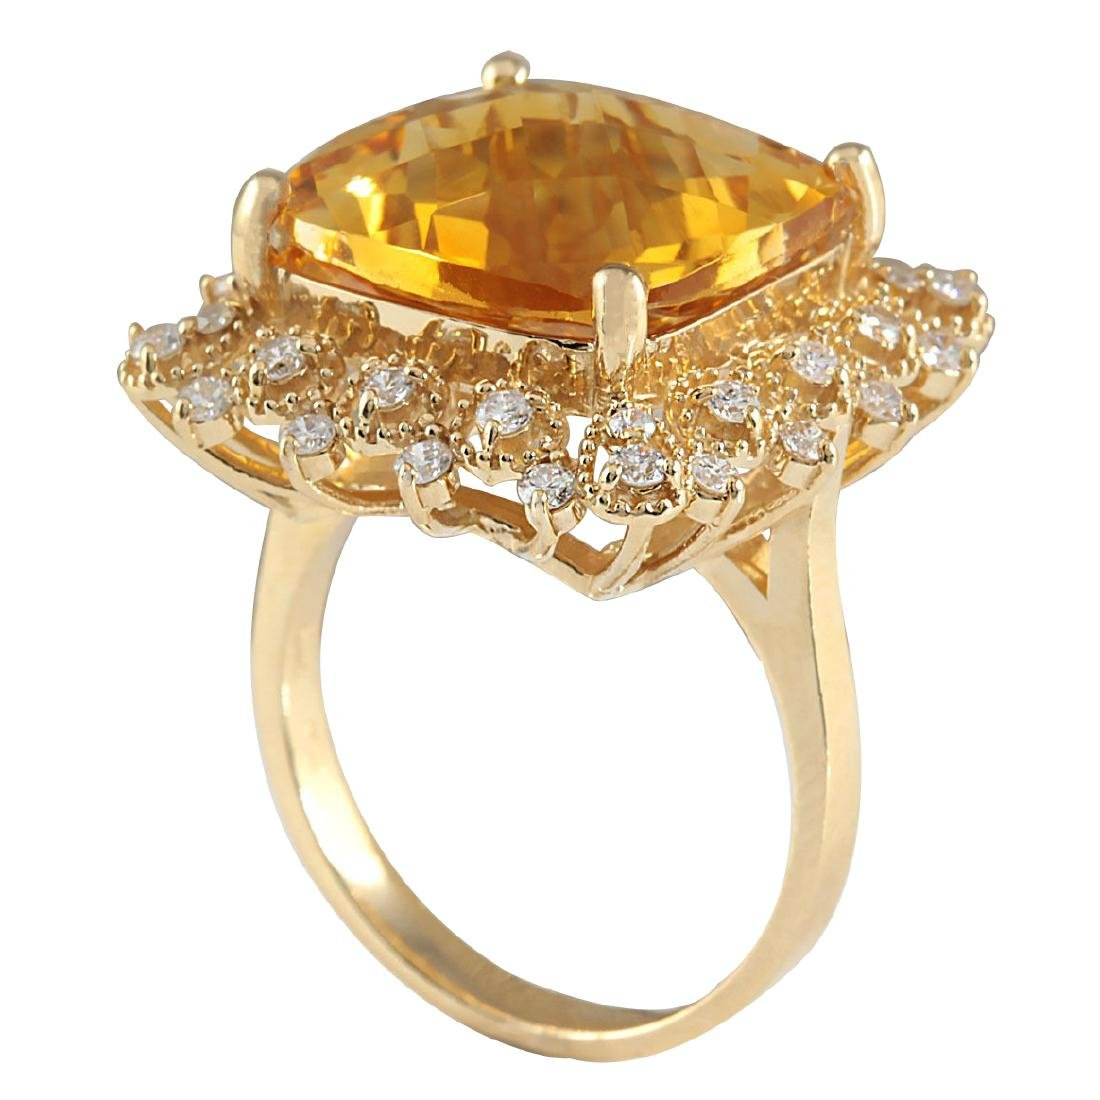 13.50CTW Natural Citrine And Diamond Ring In 18K Yellow - 3